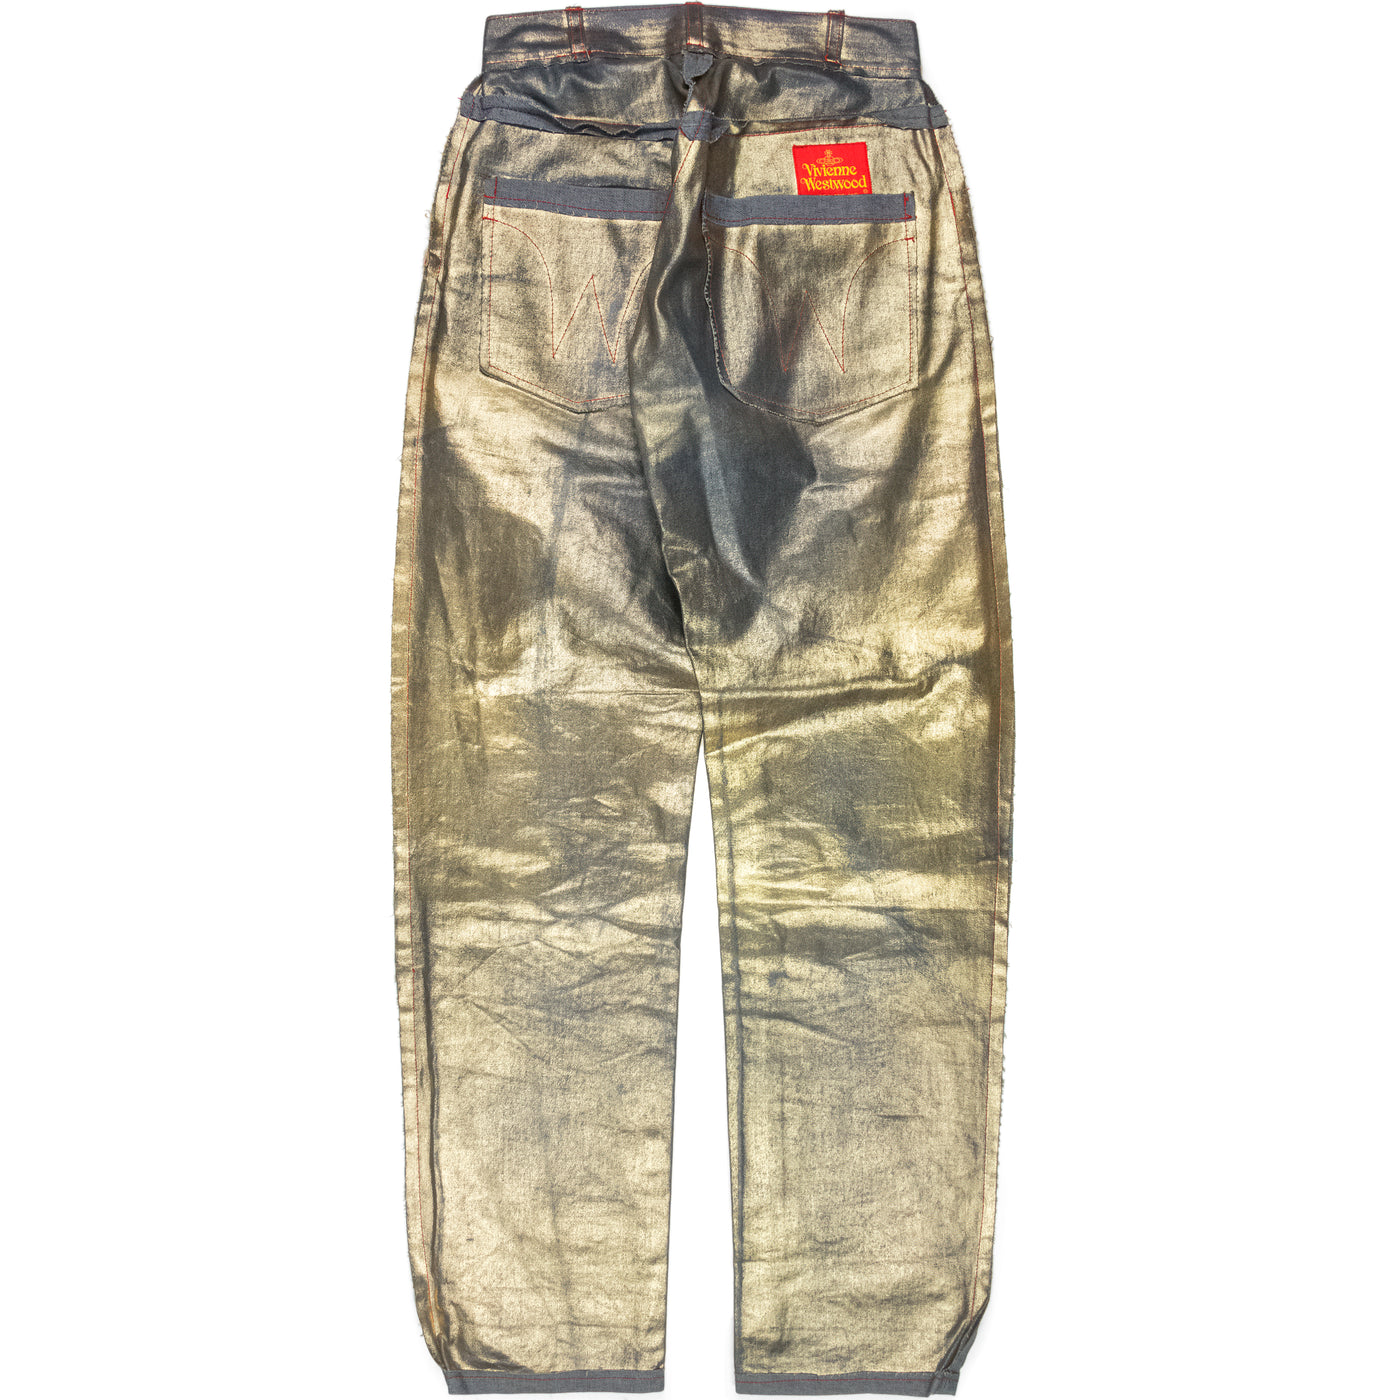 Vivienne Westwood Semi-Finished Metallic Gold Denim - AW92